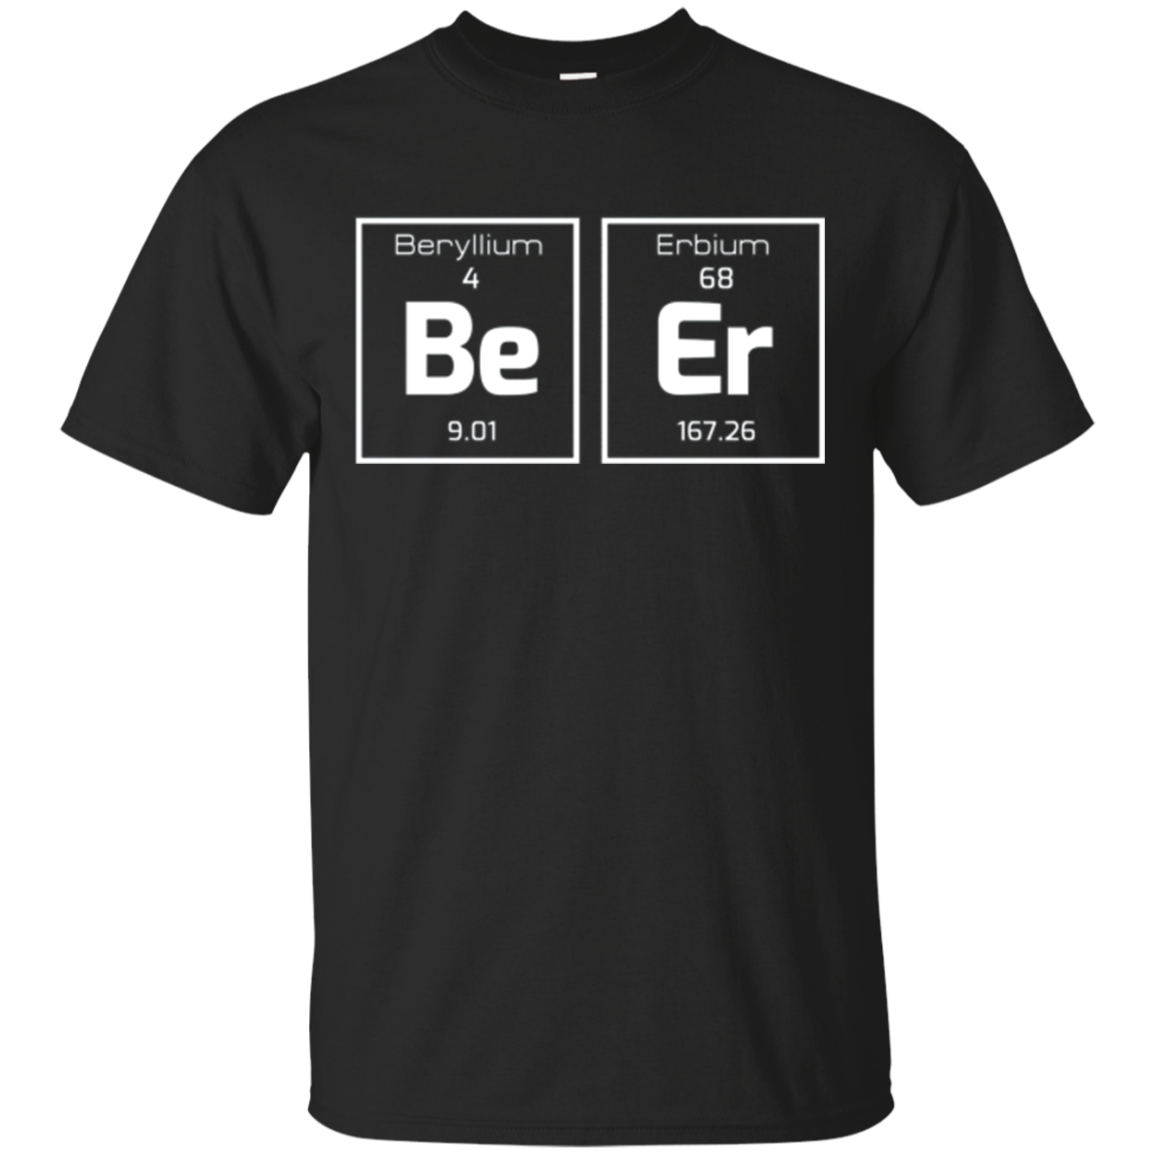 Funny Sarcastic Science Tshirt - Periodic Table Of Beer